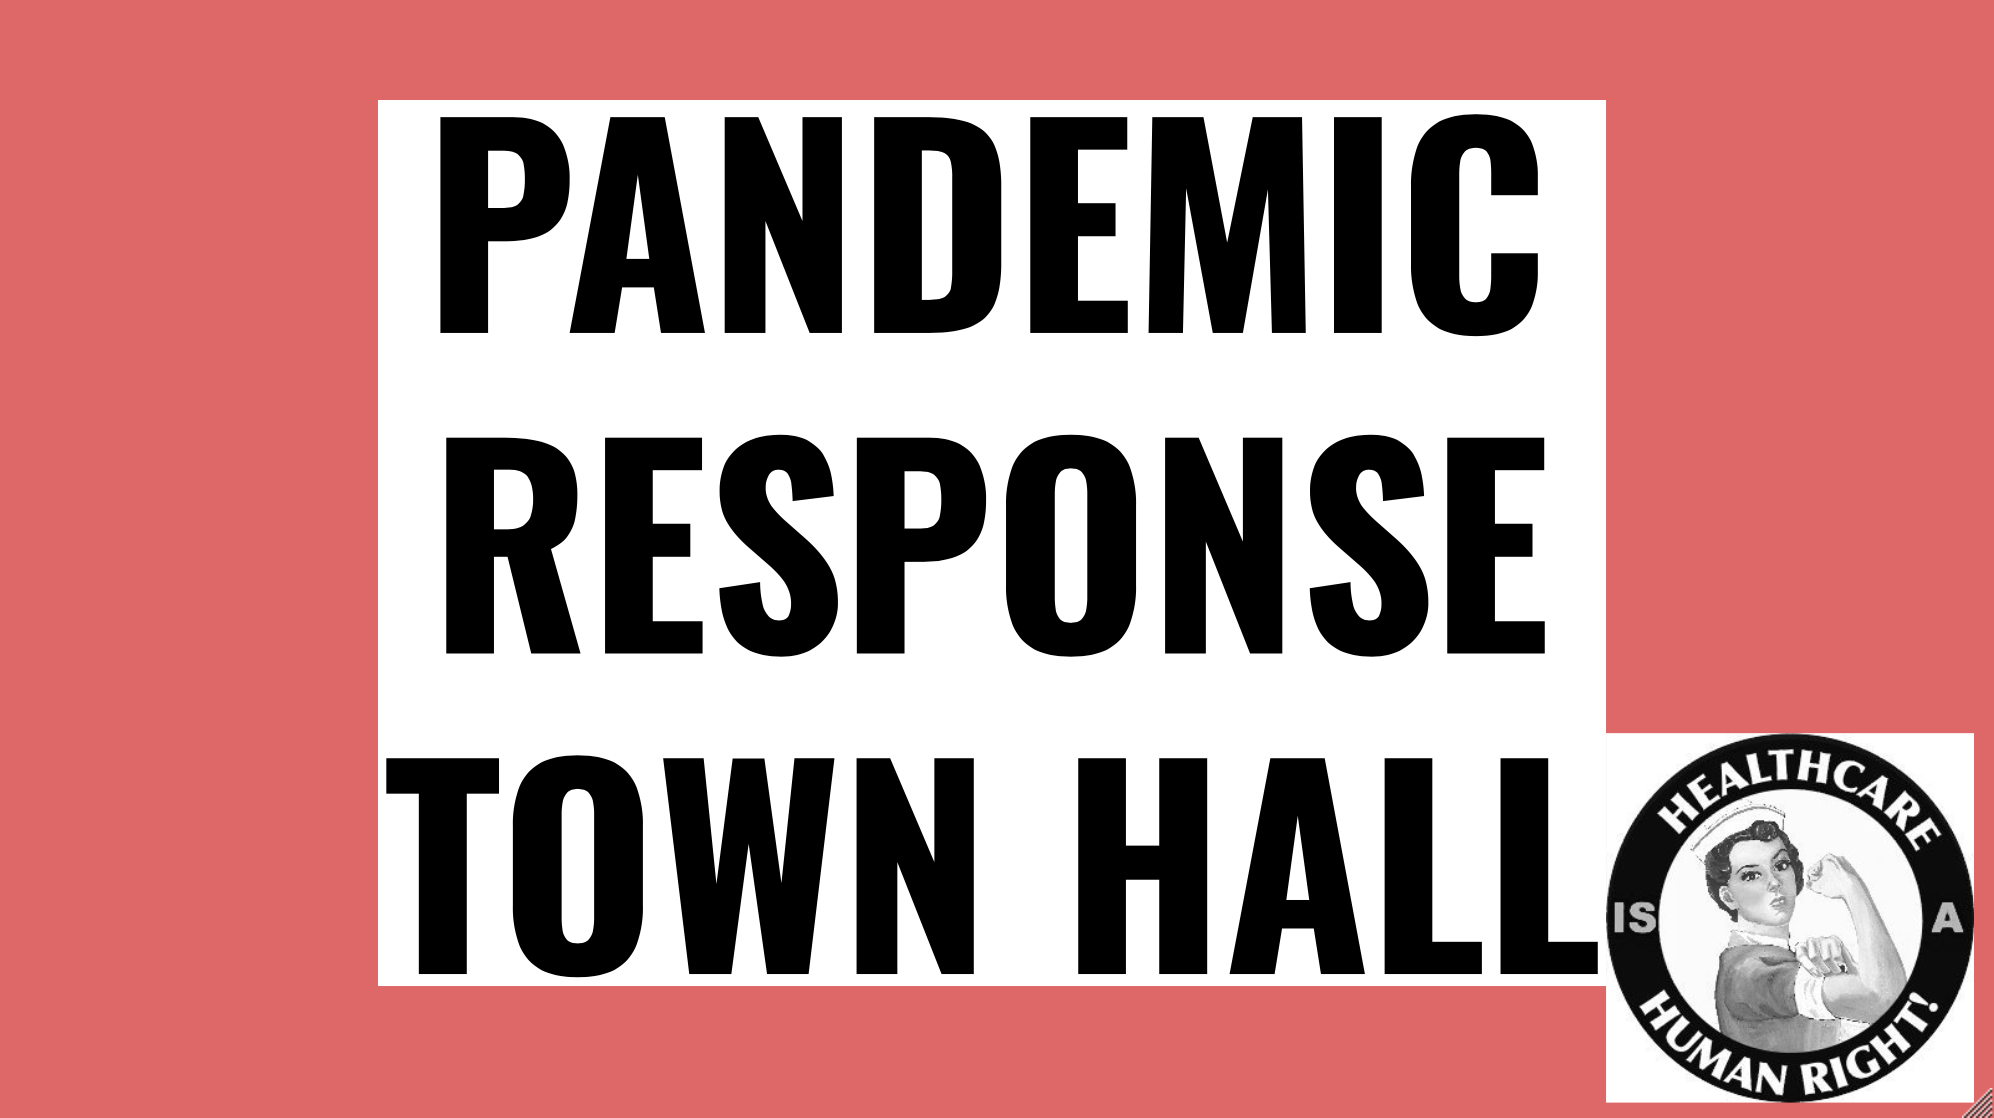 Pandemic Response Town Hall